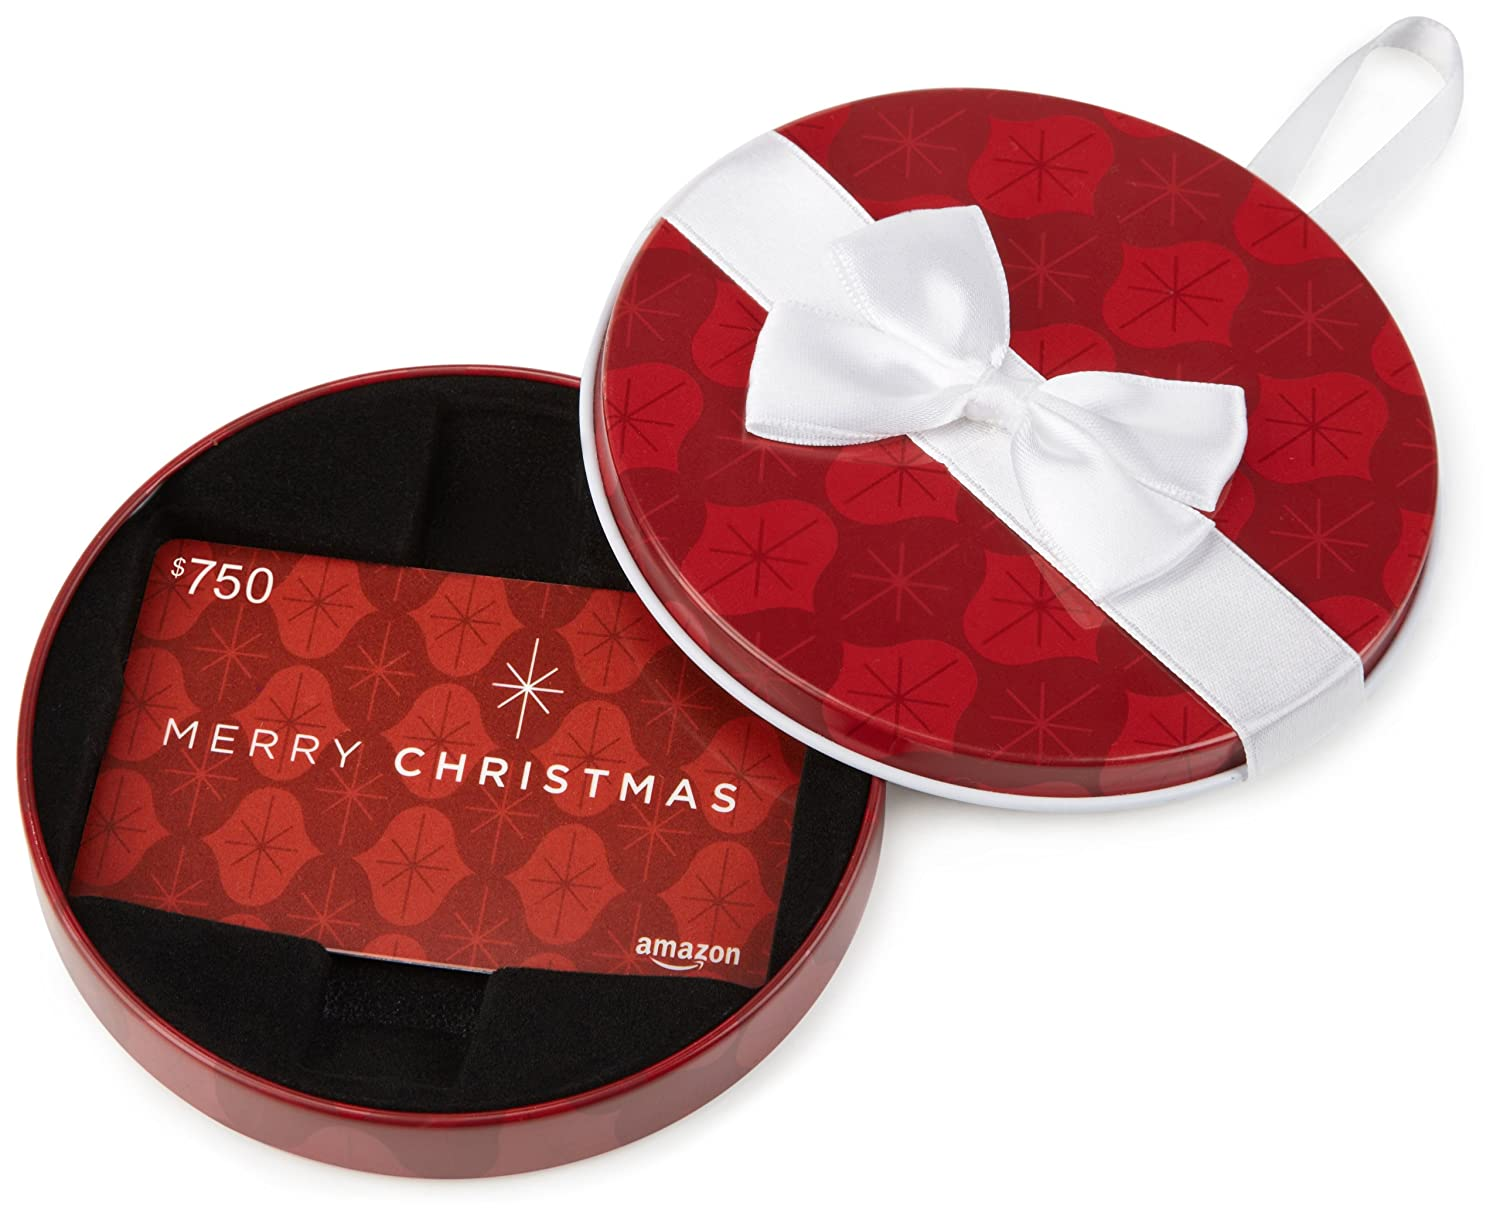 .com Gift Card in a Ornament Tin (Merry Christmas Card Design)